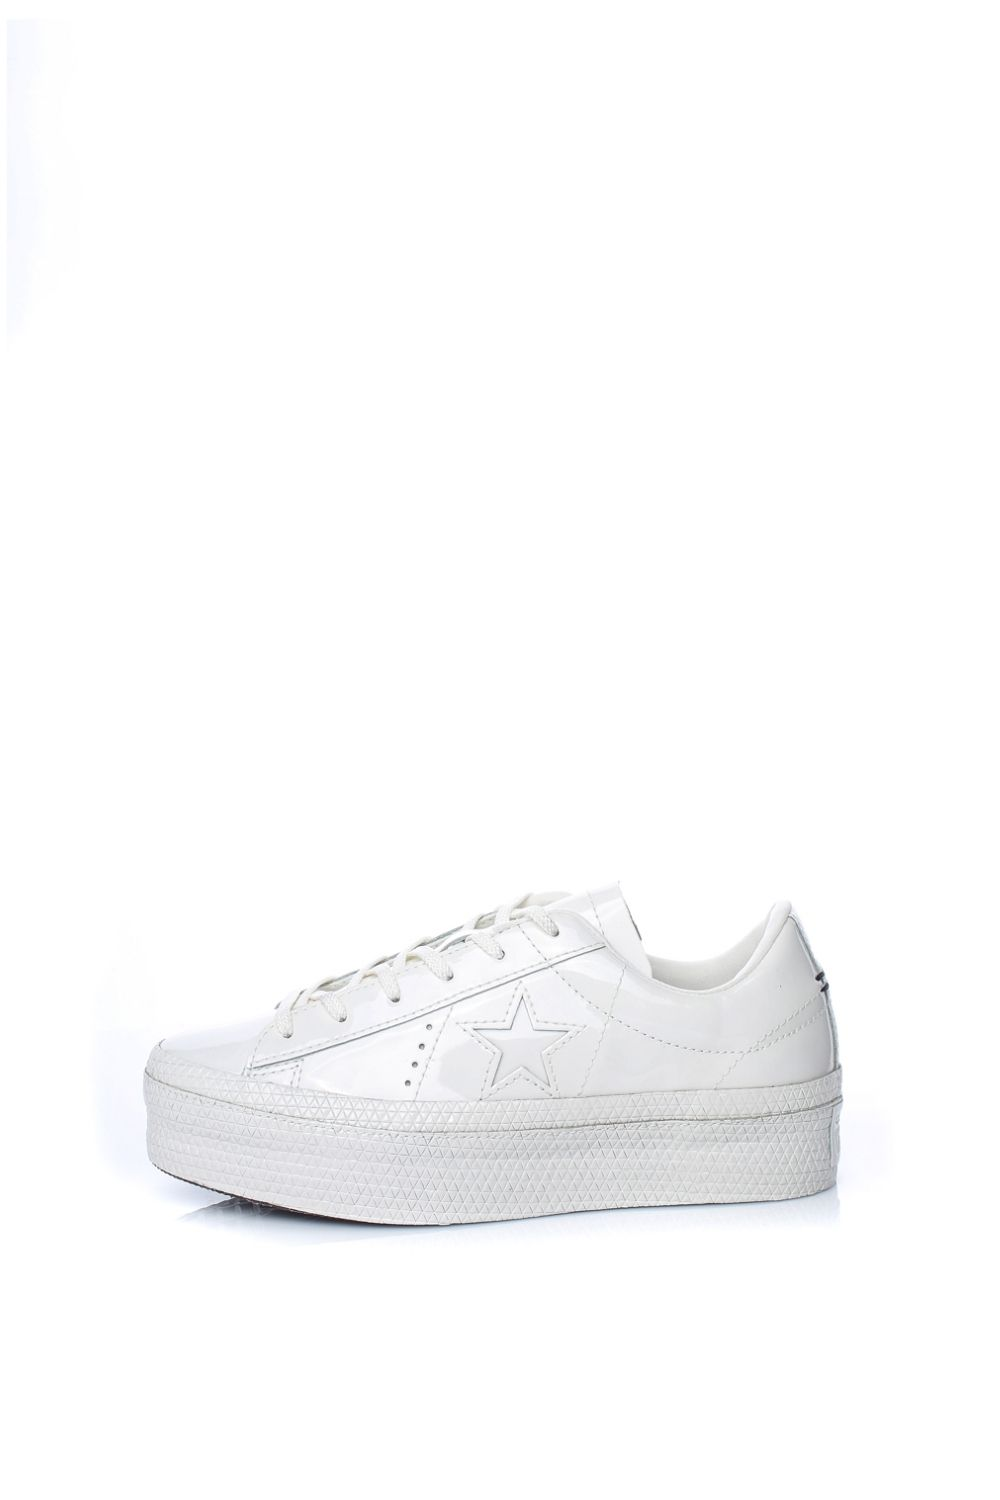 -40% Collective Online CONVERSE – Γυναικεία sneakers ONE STAR PLATFORM  CONVERSE λευκά 32ffa52325f